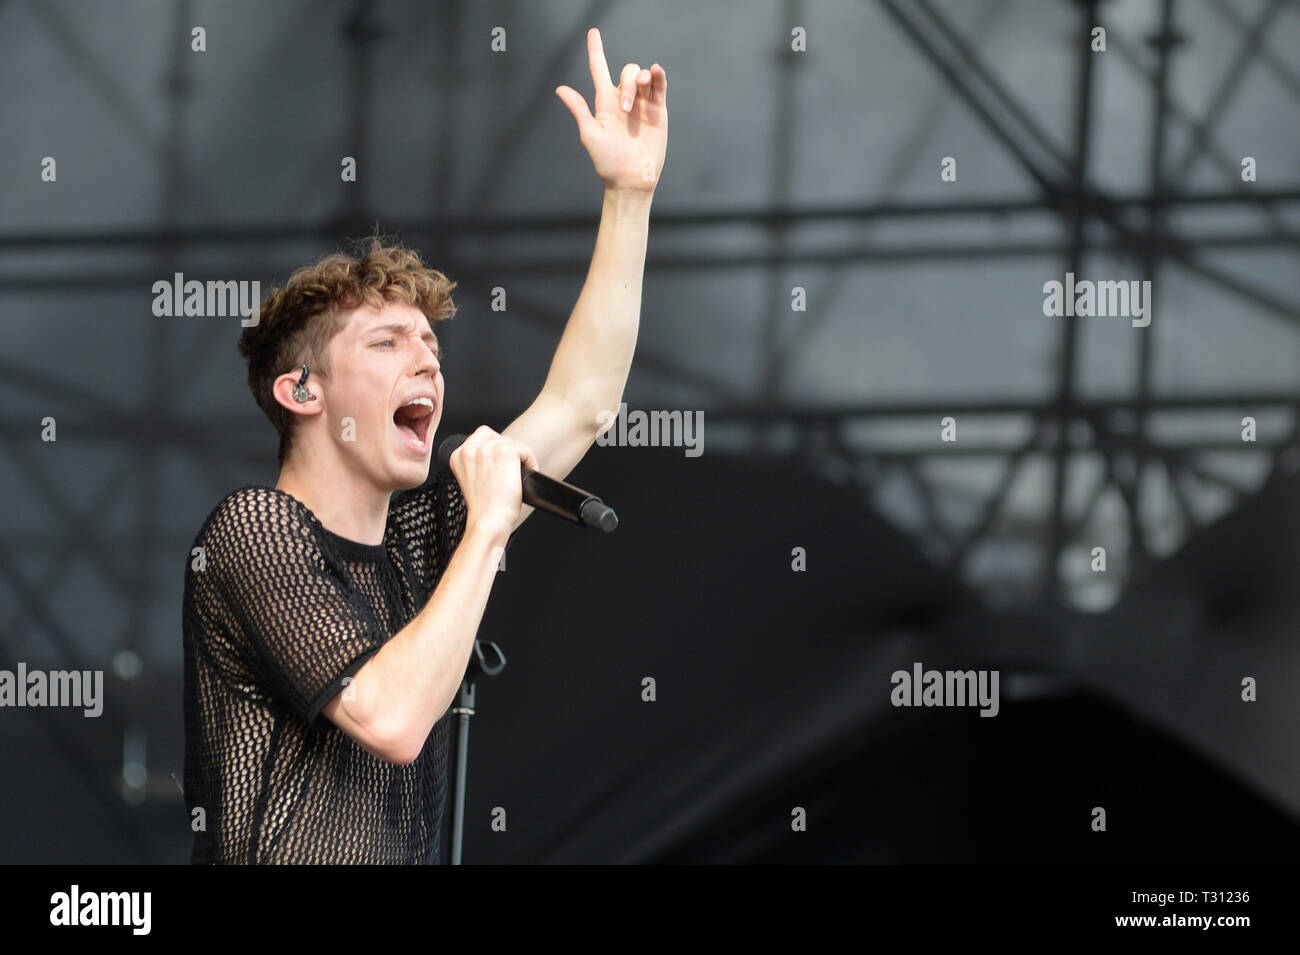 Sao Paulo, Brazil. 05th Apr, 2019. Troye Sivan performs at the Lollapalooza 2019 festival, held at the Autodromo de Interlagos in São Paulo on Friday, 05. (PHOTO: LEVI BIANCO/BRAZIL PHOTO PRESS) Credit: Brazil Photo Press/Alamy Live News - Stock Image